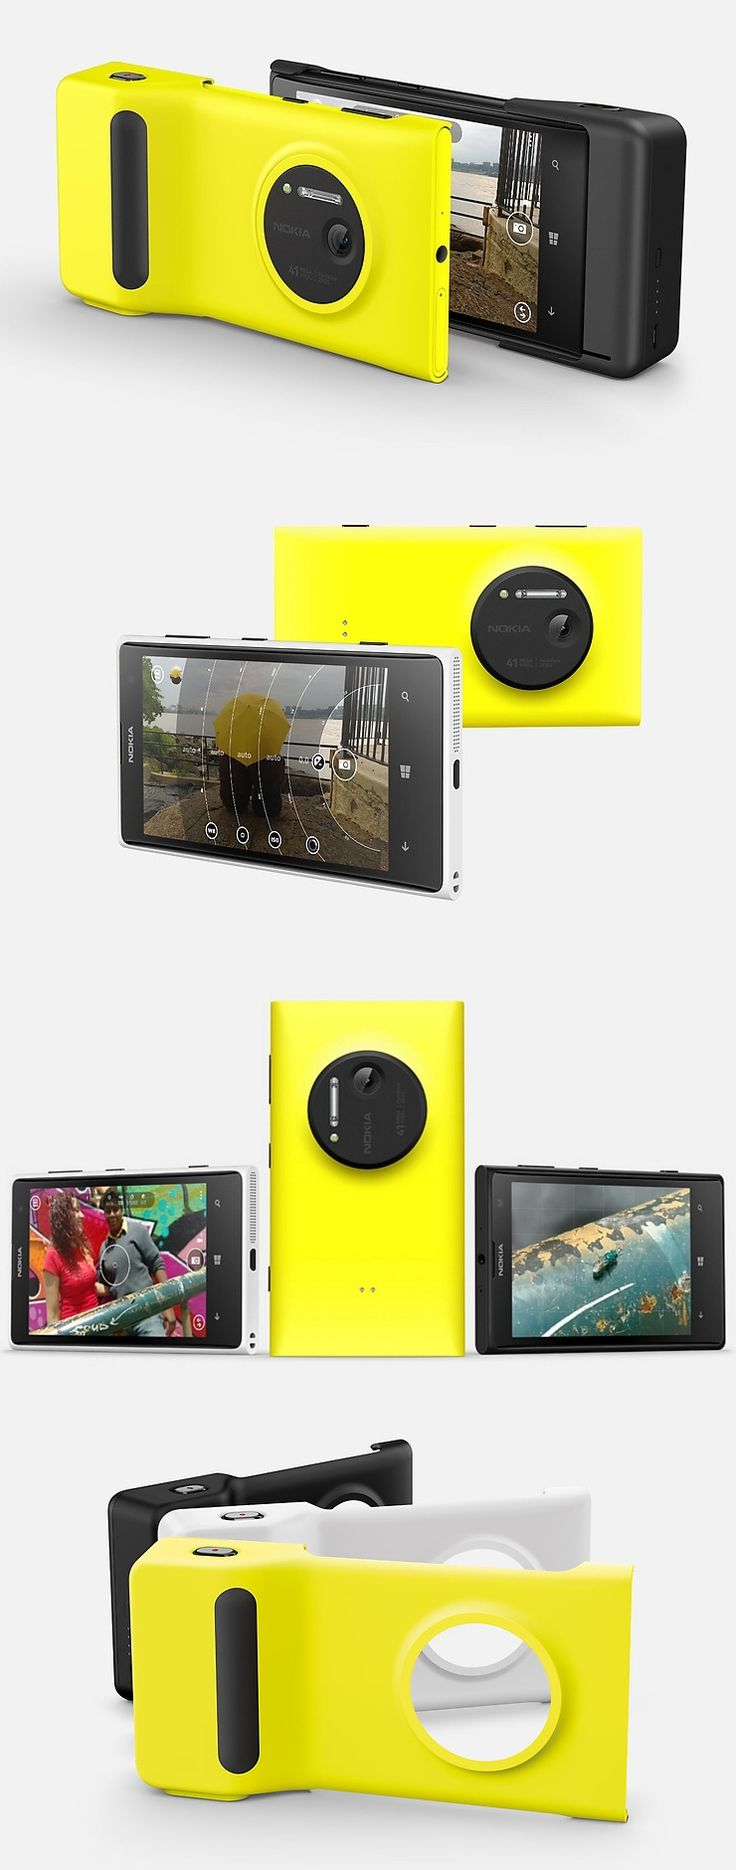 What? A smartphone with a 41-megapixel camera? That's what Nokia introduced today with the Lumia 1020, a Windows Phone 8 unit with an image sensor far sharper than those of most point-and-shoot digital cameras. Snap one photo and it saves two: One at the full 41MP resolution and one at 5MP for easy sharing. It has a 4.5-inch display, an image-stabilization feature and comes with Nokia Pro Camera, a sophisticated, but easy-to-use camera app. Arrives at AT July 26. $300 with a two-year plan.